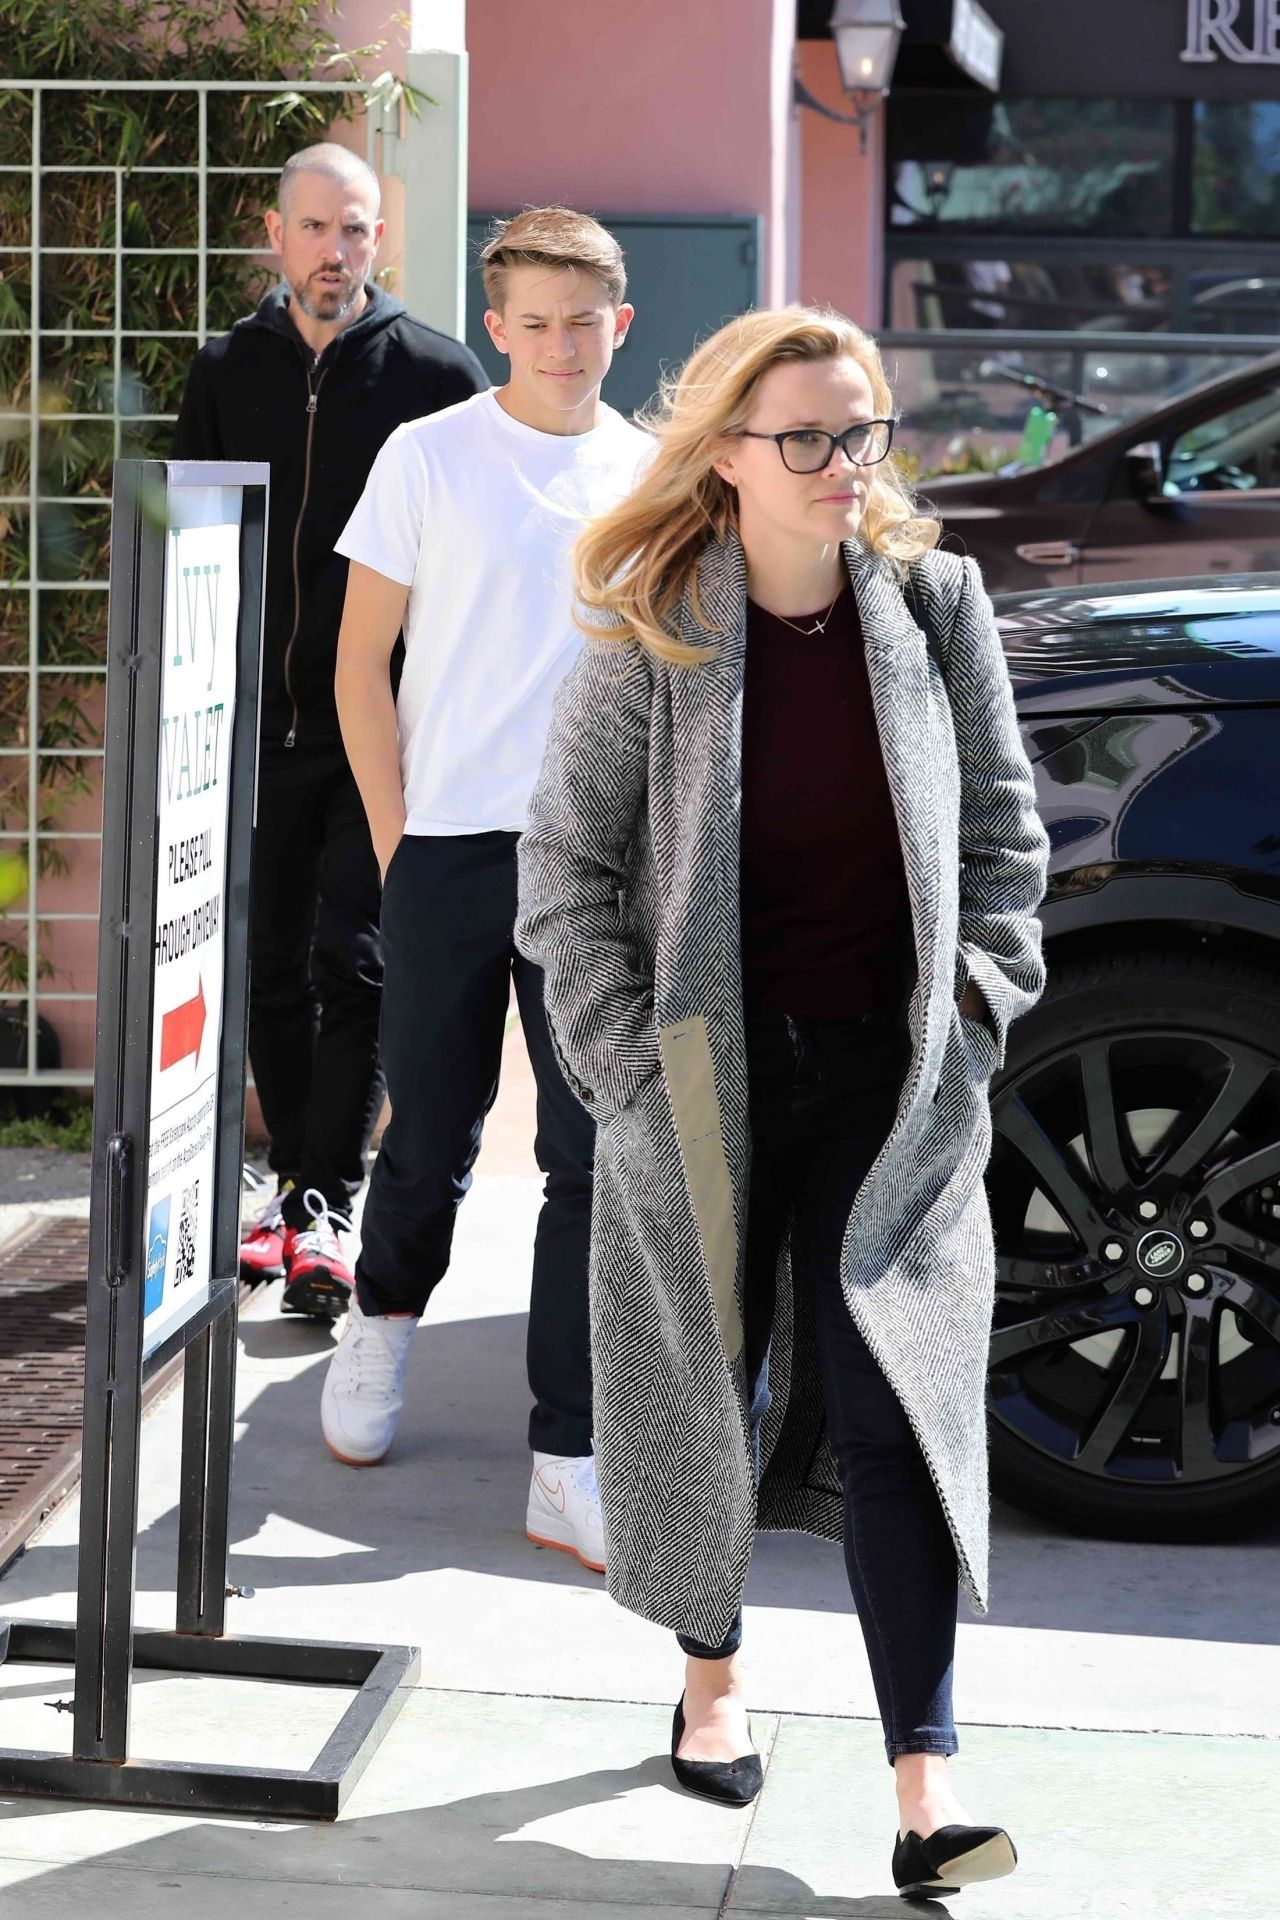 Reese Witherspoon Casual Style 03 10 2019